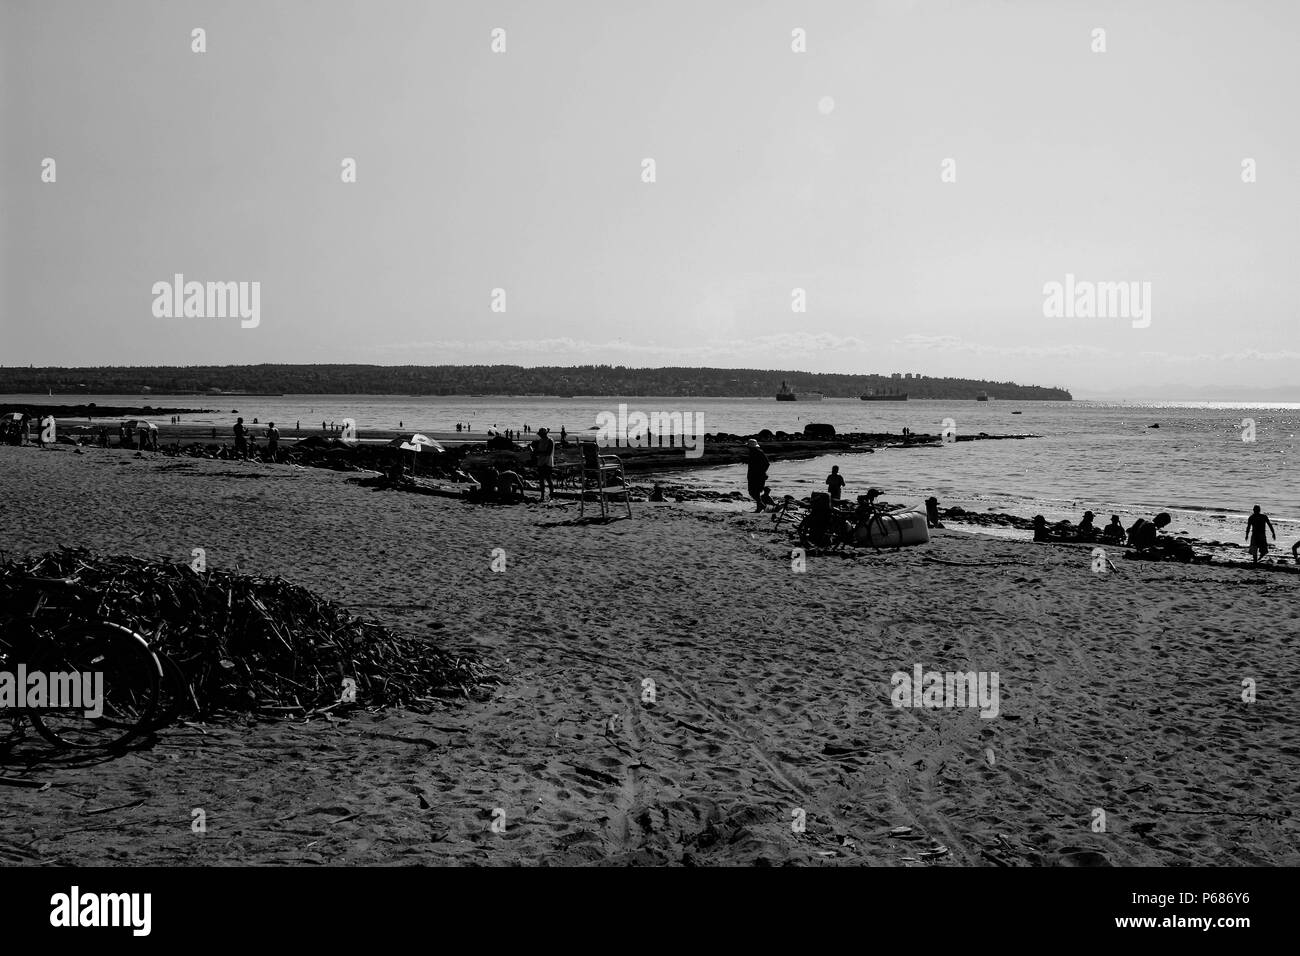 Third Beach at Stanley Park in Vancouver, British Columbiab black and white photograph of the well known landmark. - Stock Image